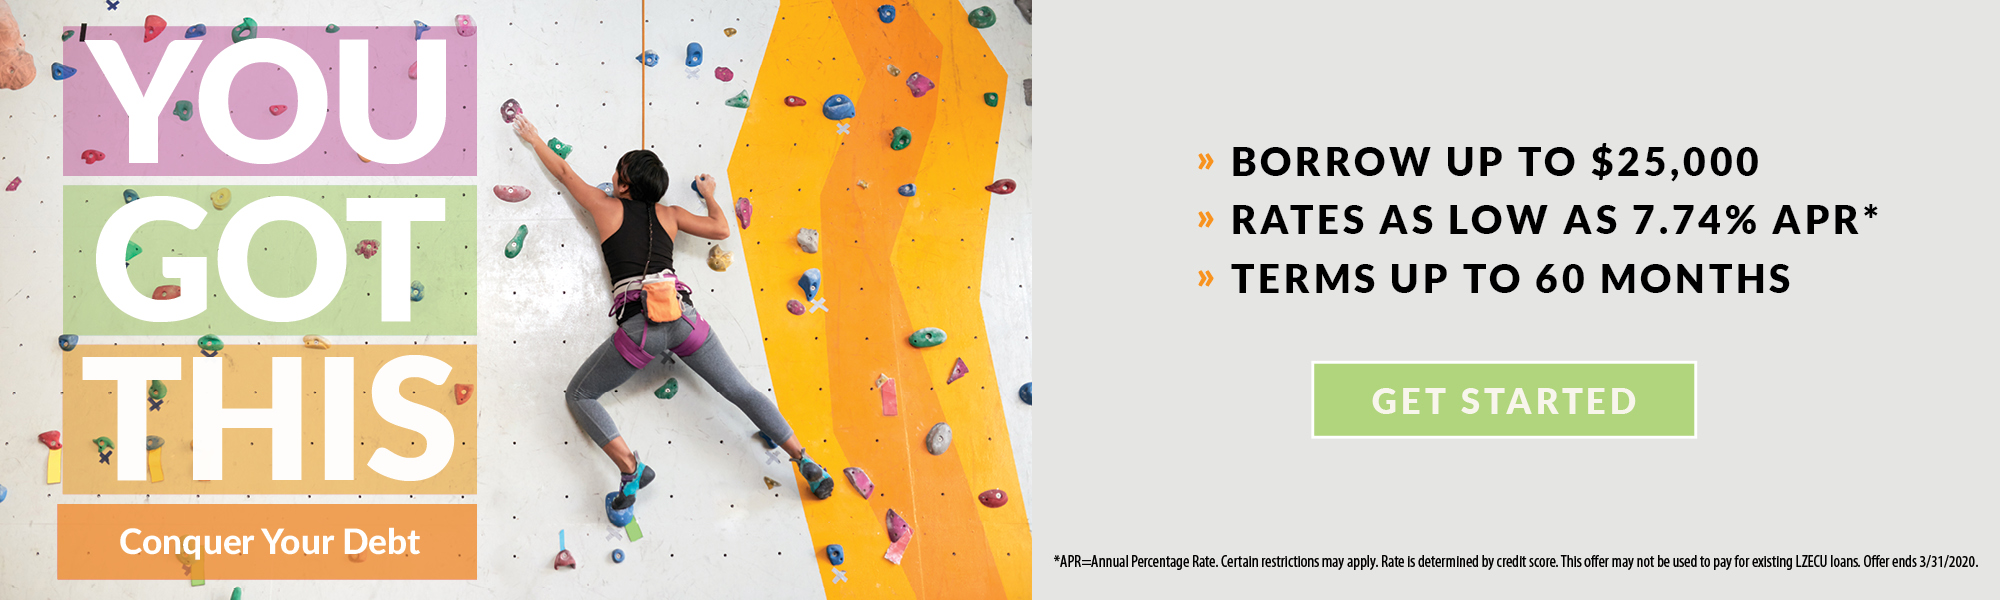 You got this - lady climbing rock wall. loan special click for more information